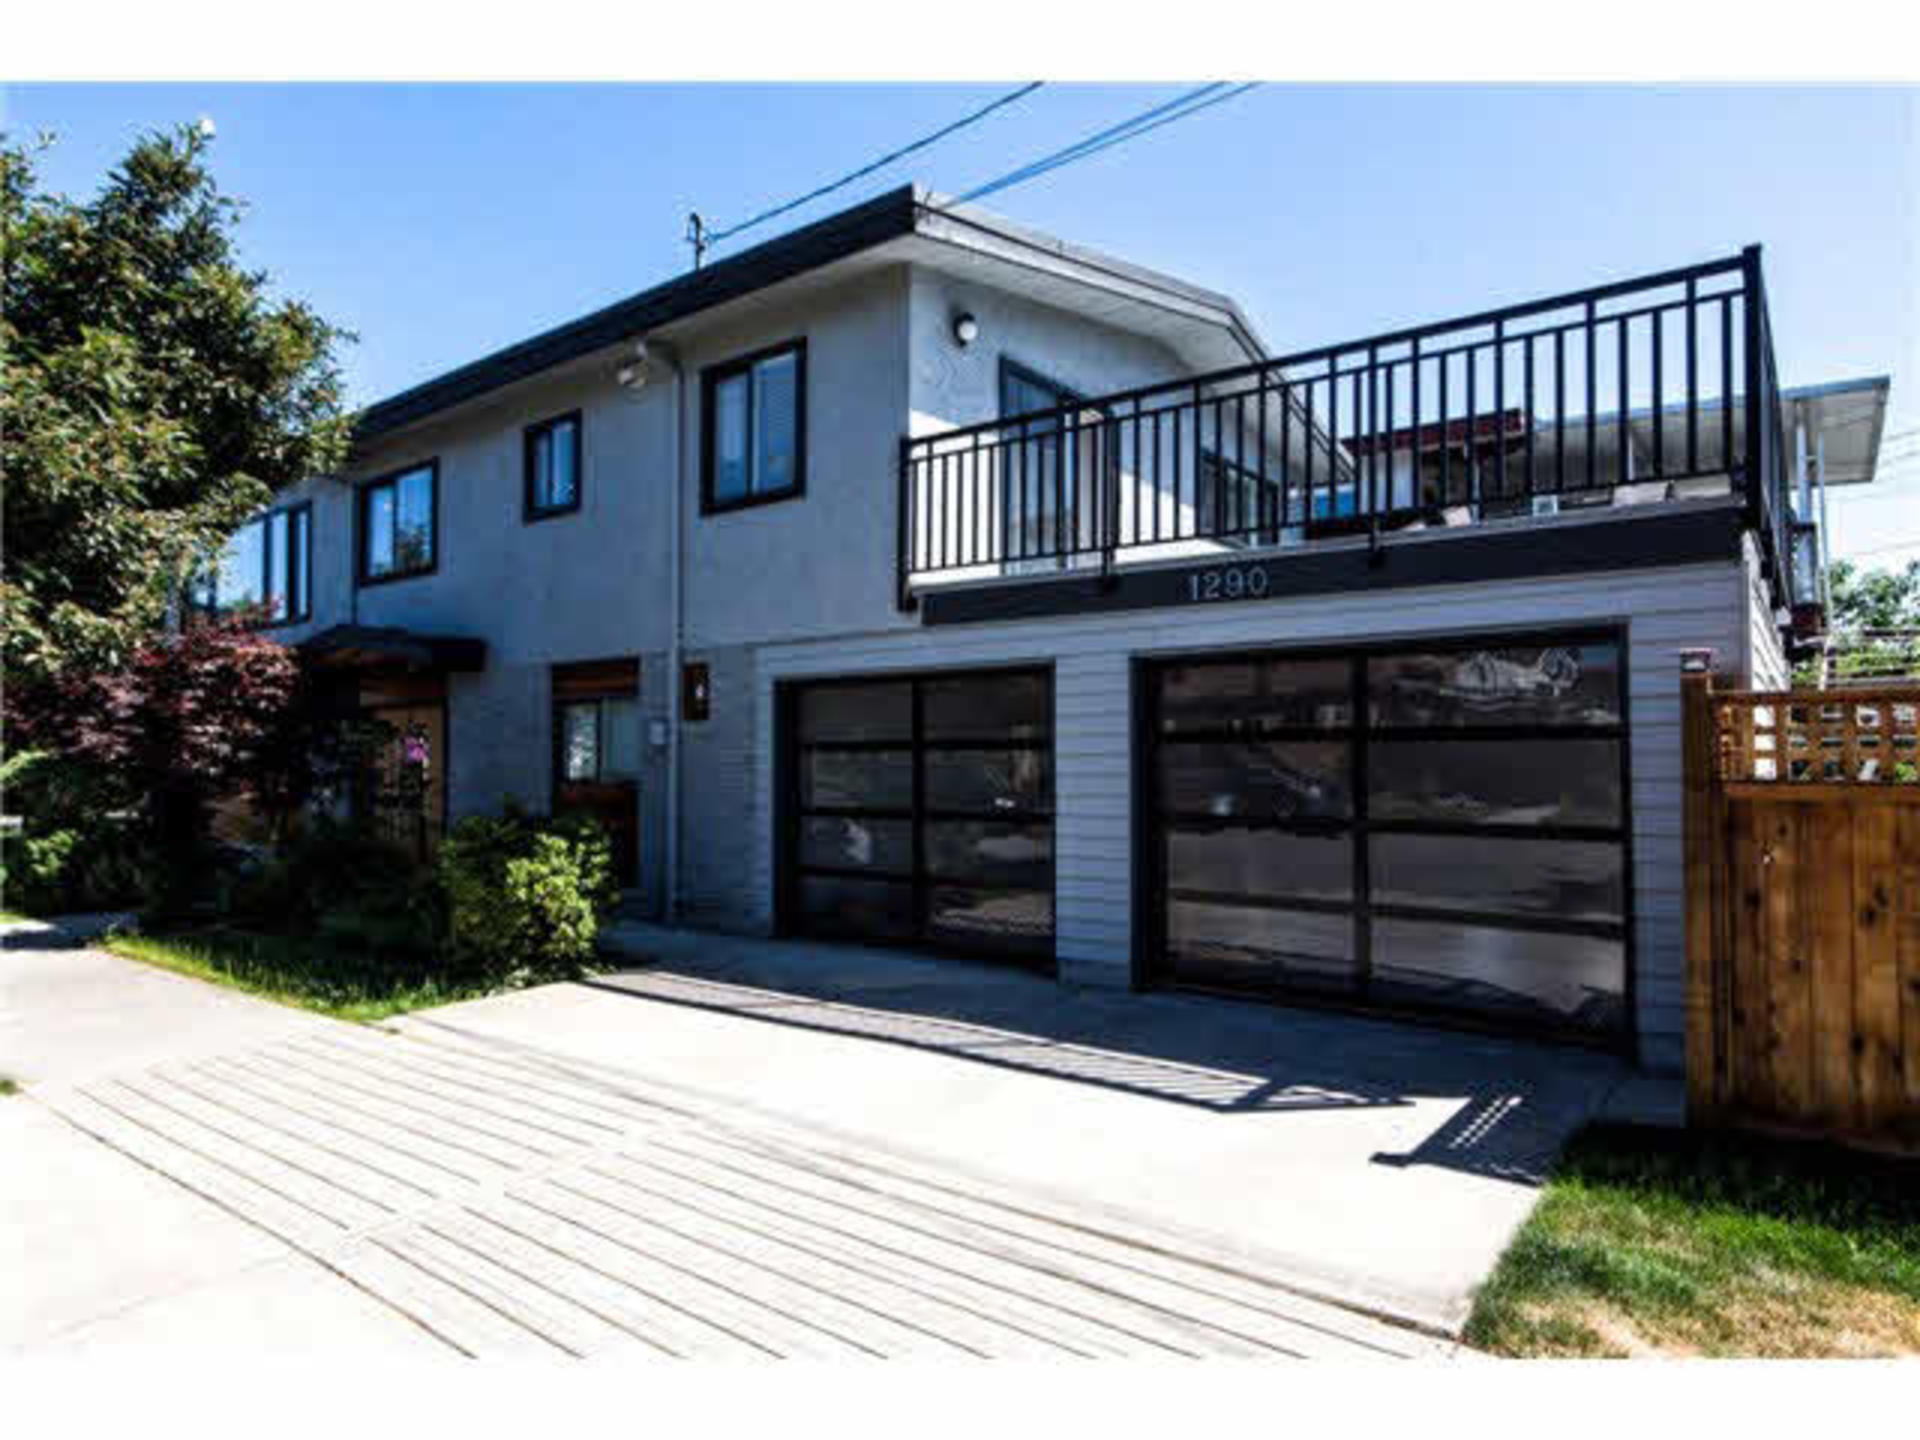 261808945-1 at 1290 E 43rd Avenue, Knight, Vancouver East